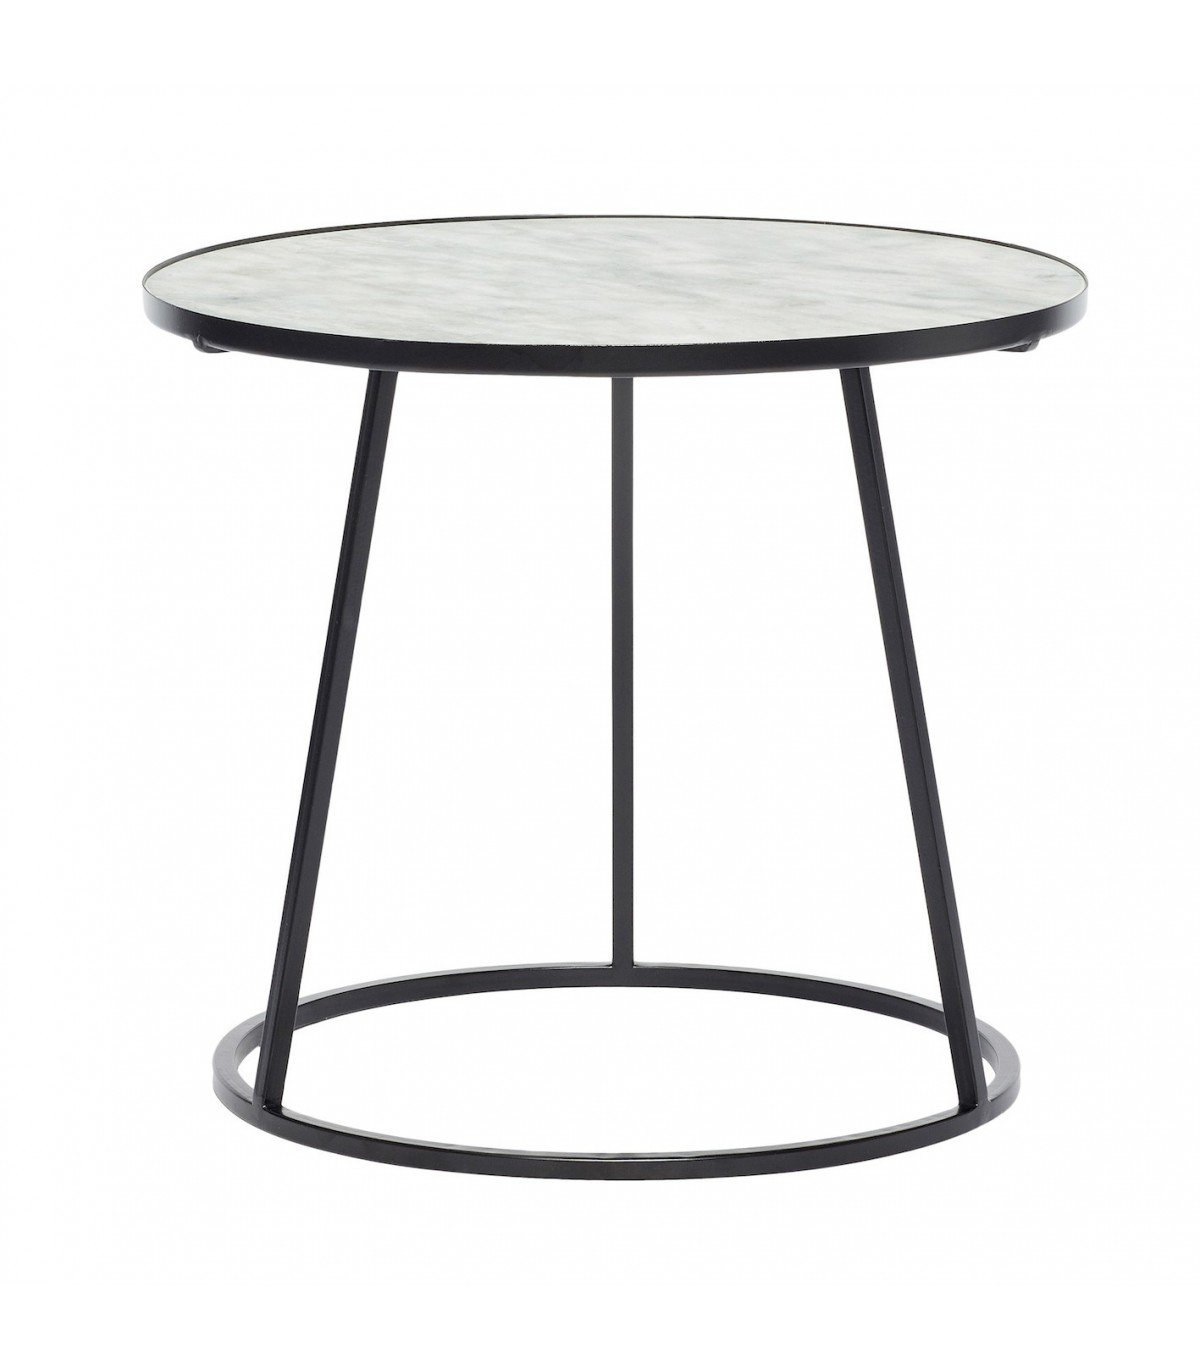 Metal coffee table black and white marble hbsch Black and white coffee table